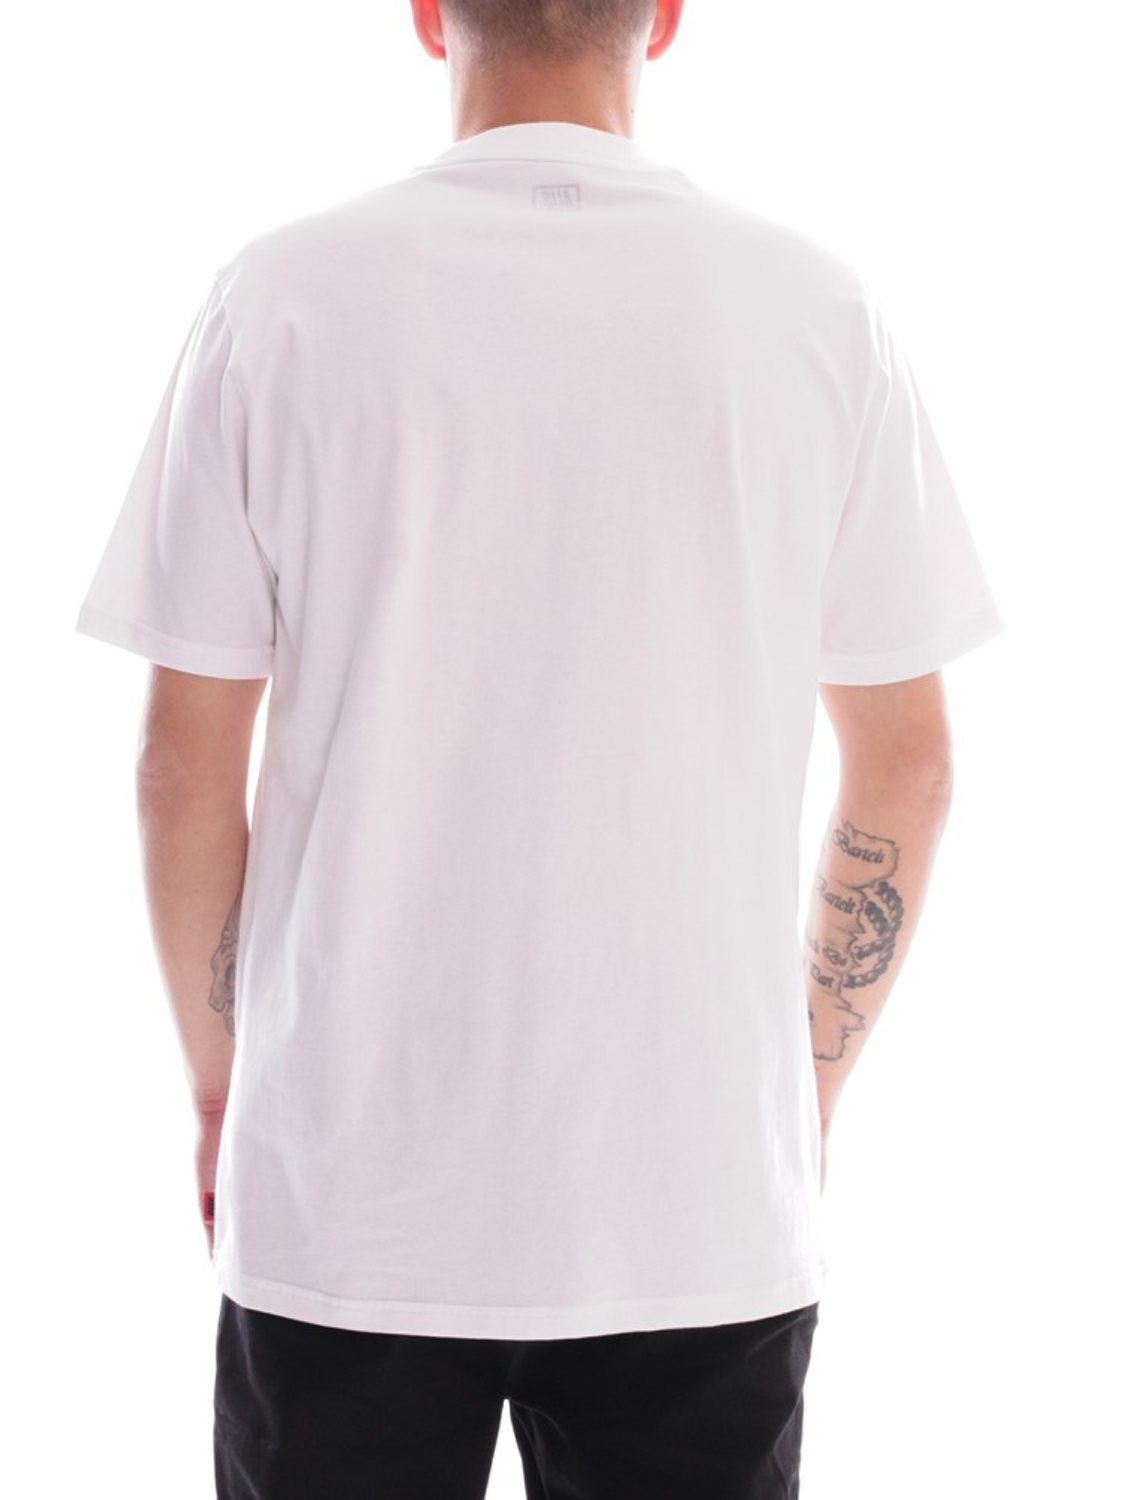 ALIS - T-SHIRT SPLATTER WHITE | GATE 36 HOBRO